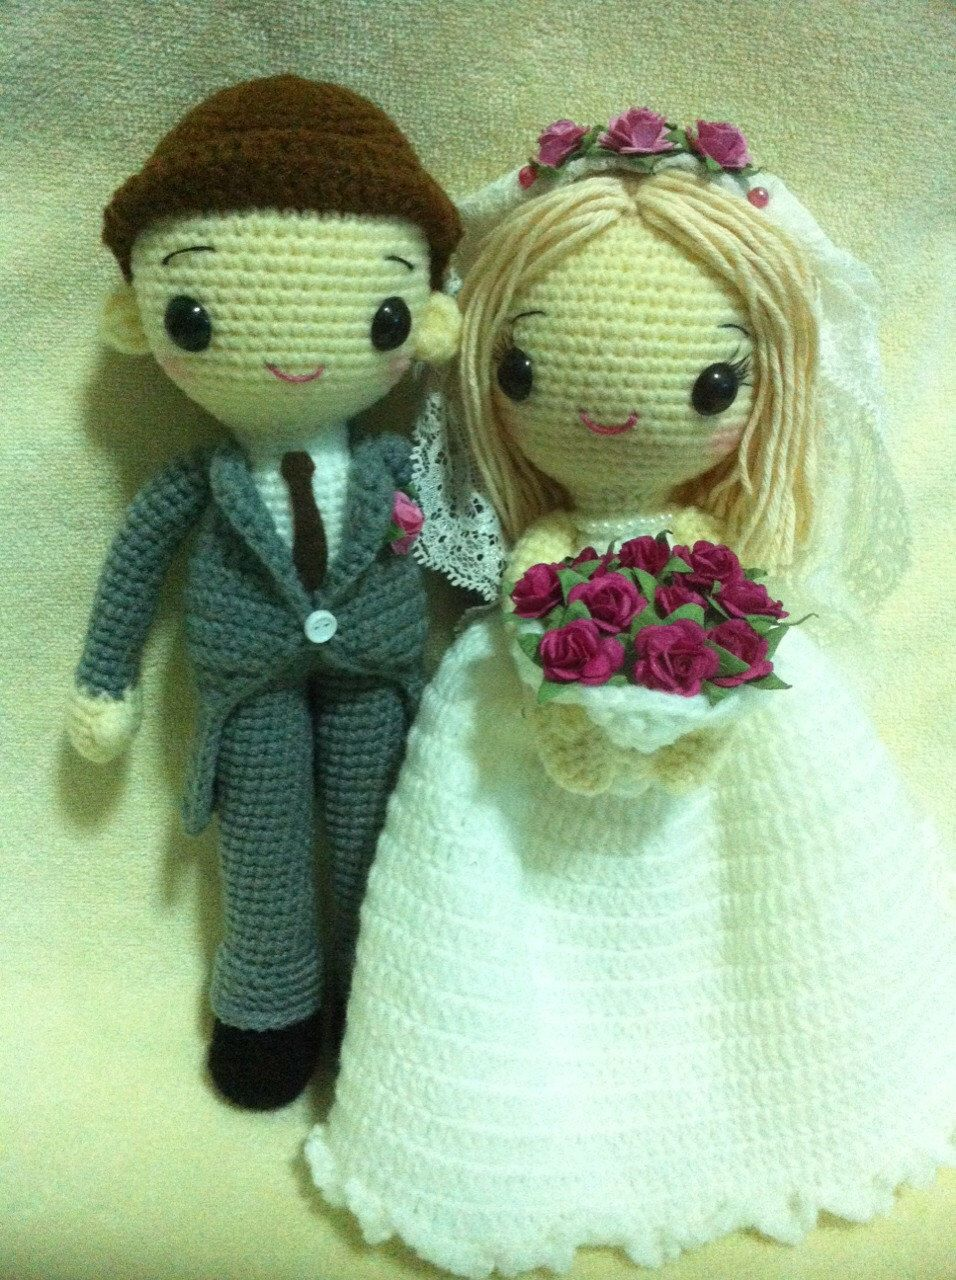 Sweety Couple Amigurumi Bride & Groom Crochet Doll - MADE TO ORDER by Handmade2557 on Etsy https://www.etsy.com/listing/234438205/sweety-couple-amigurumi-bride-groom